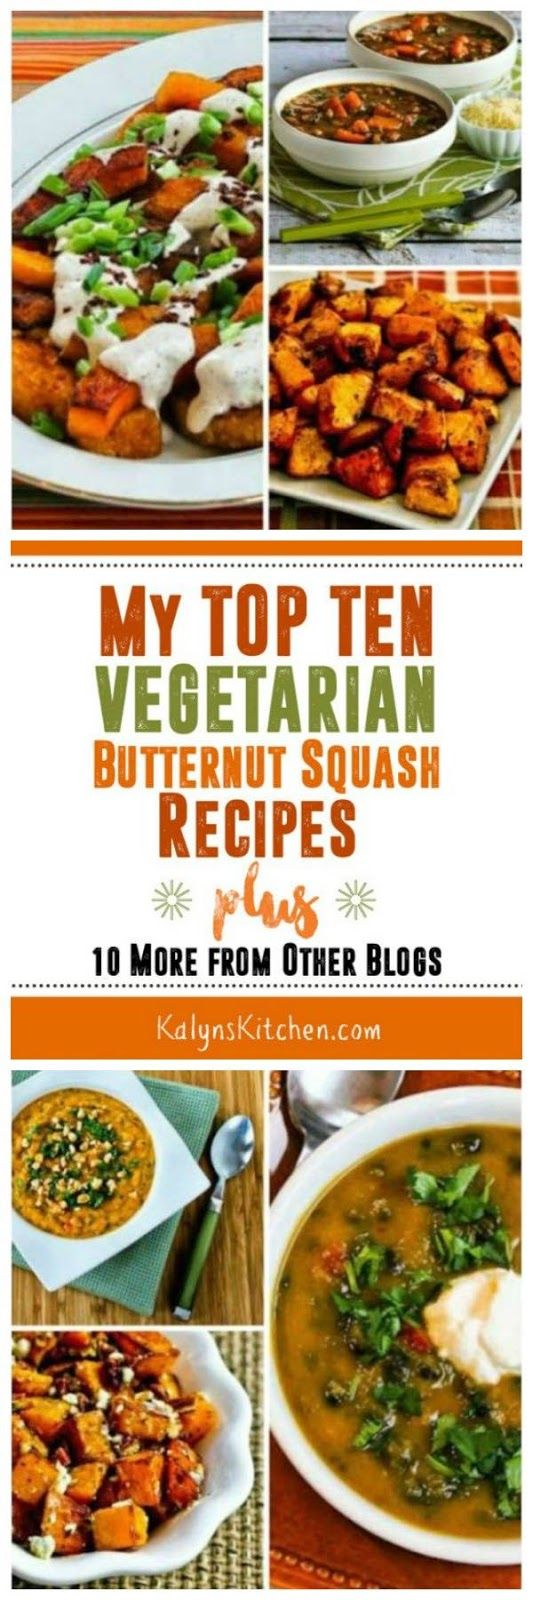 For everyone who loves butternut squash like I do, here are My Top Ten Vegetarian Butternut Squash Recipes! All of these are winners! [found on KalynsKitchen.com] #ButternutSquash #Vegetarian #MeatlessMonday #FallFoods #ButternutSquashRecipes